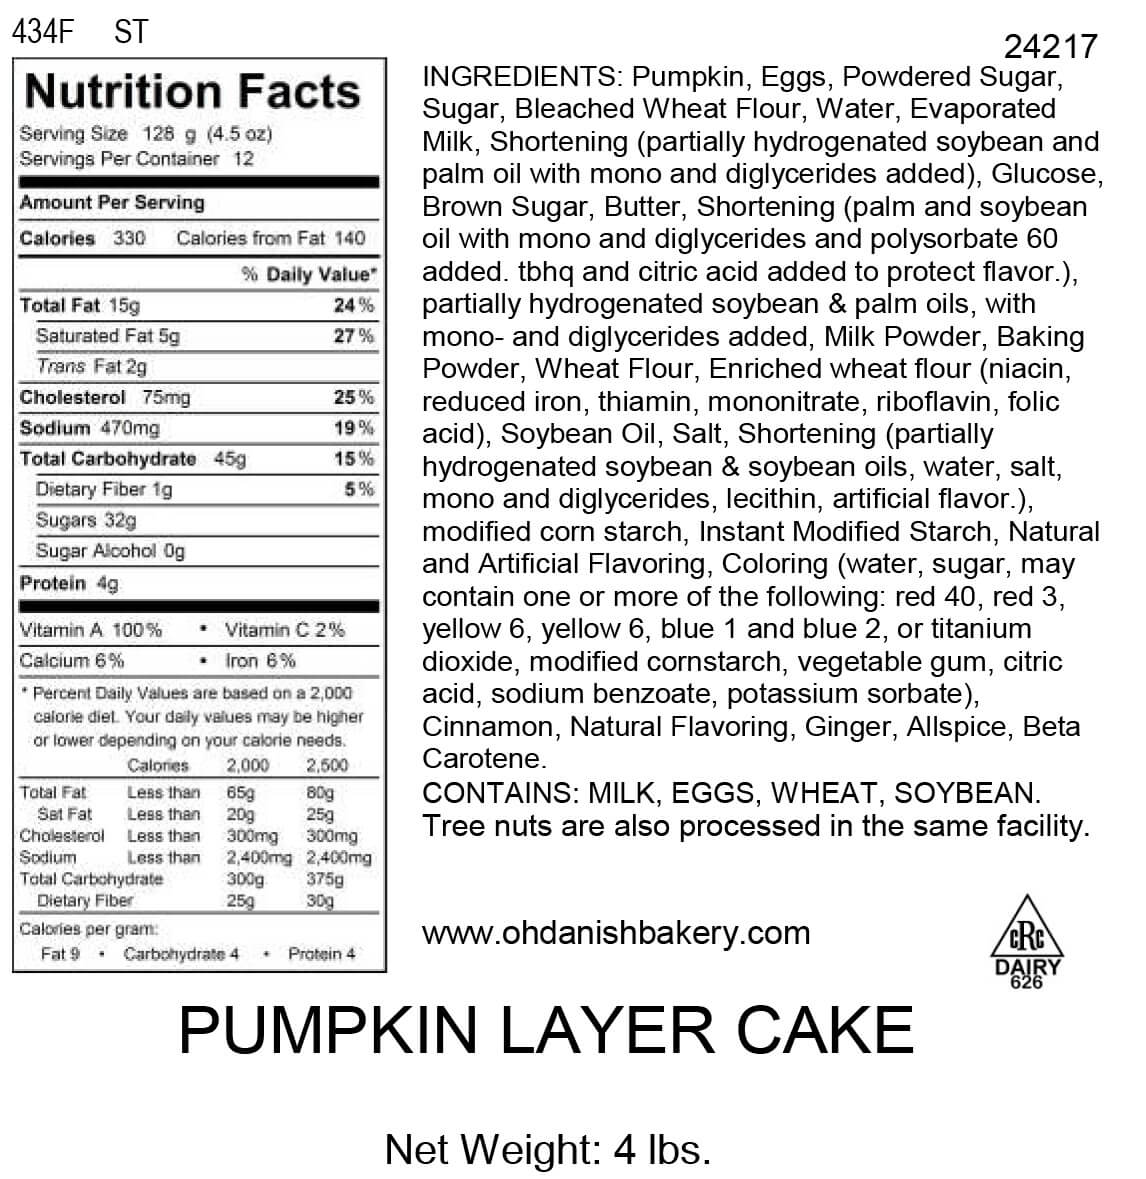 Nutritional Label for Pumpkin Layer Cake